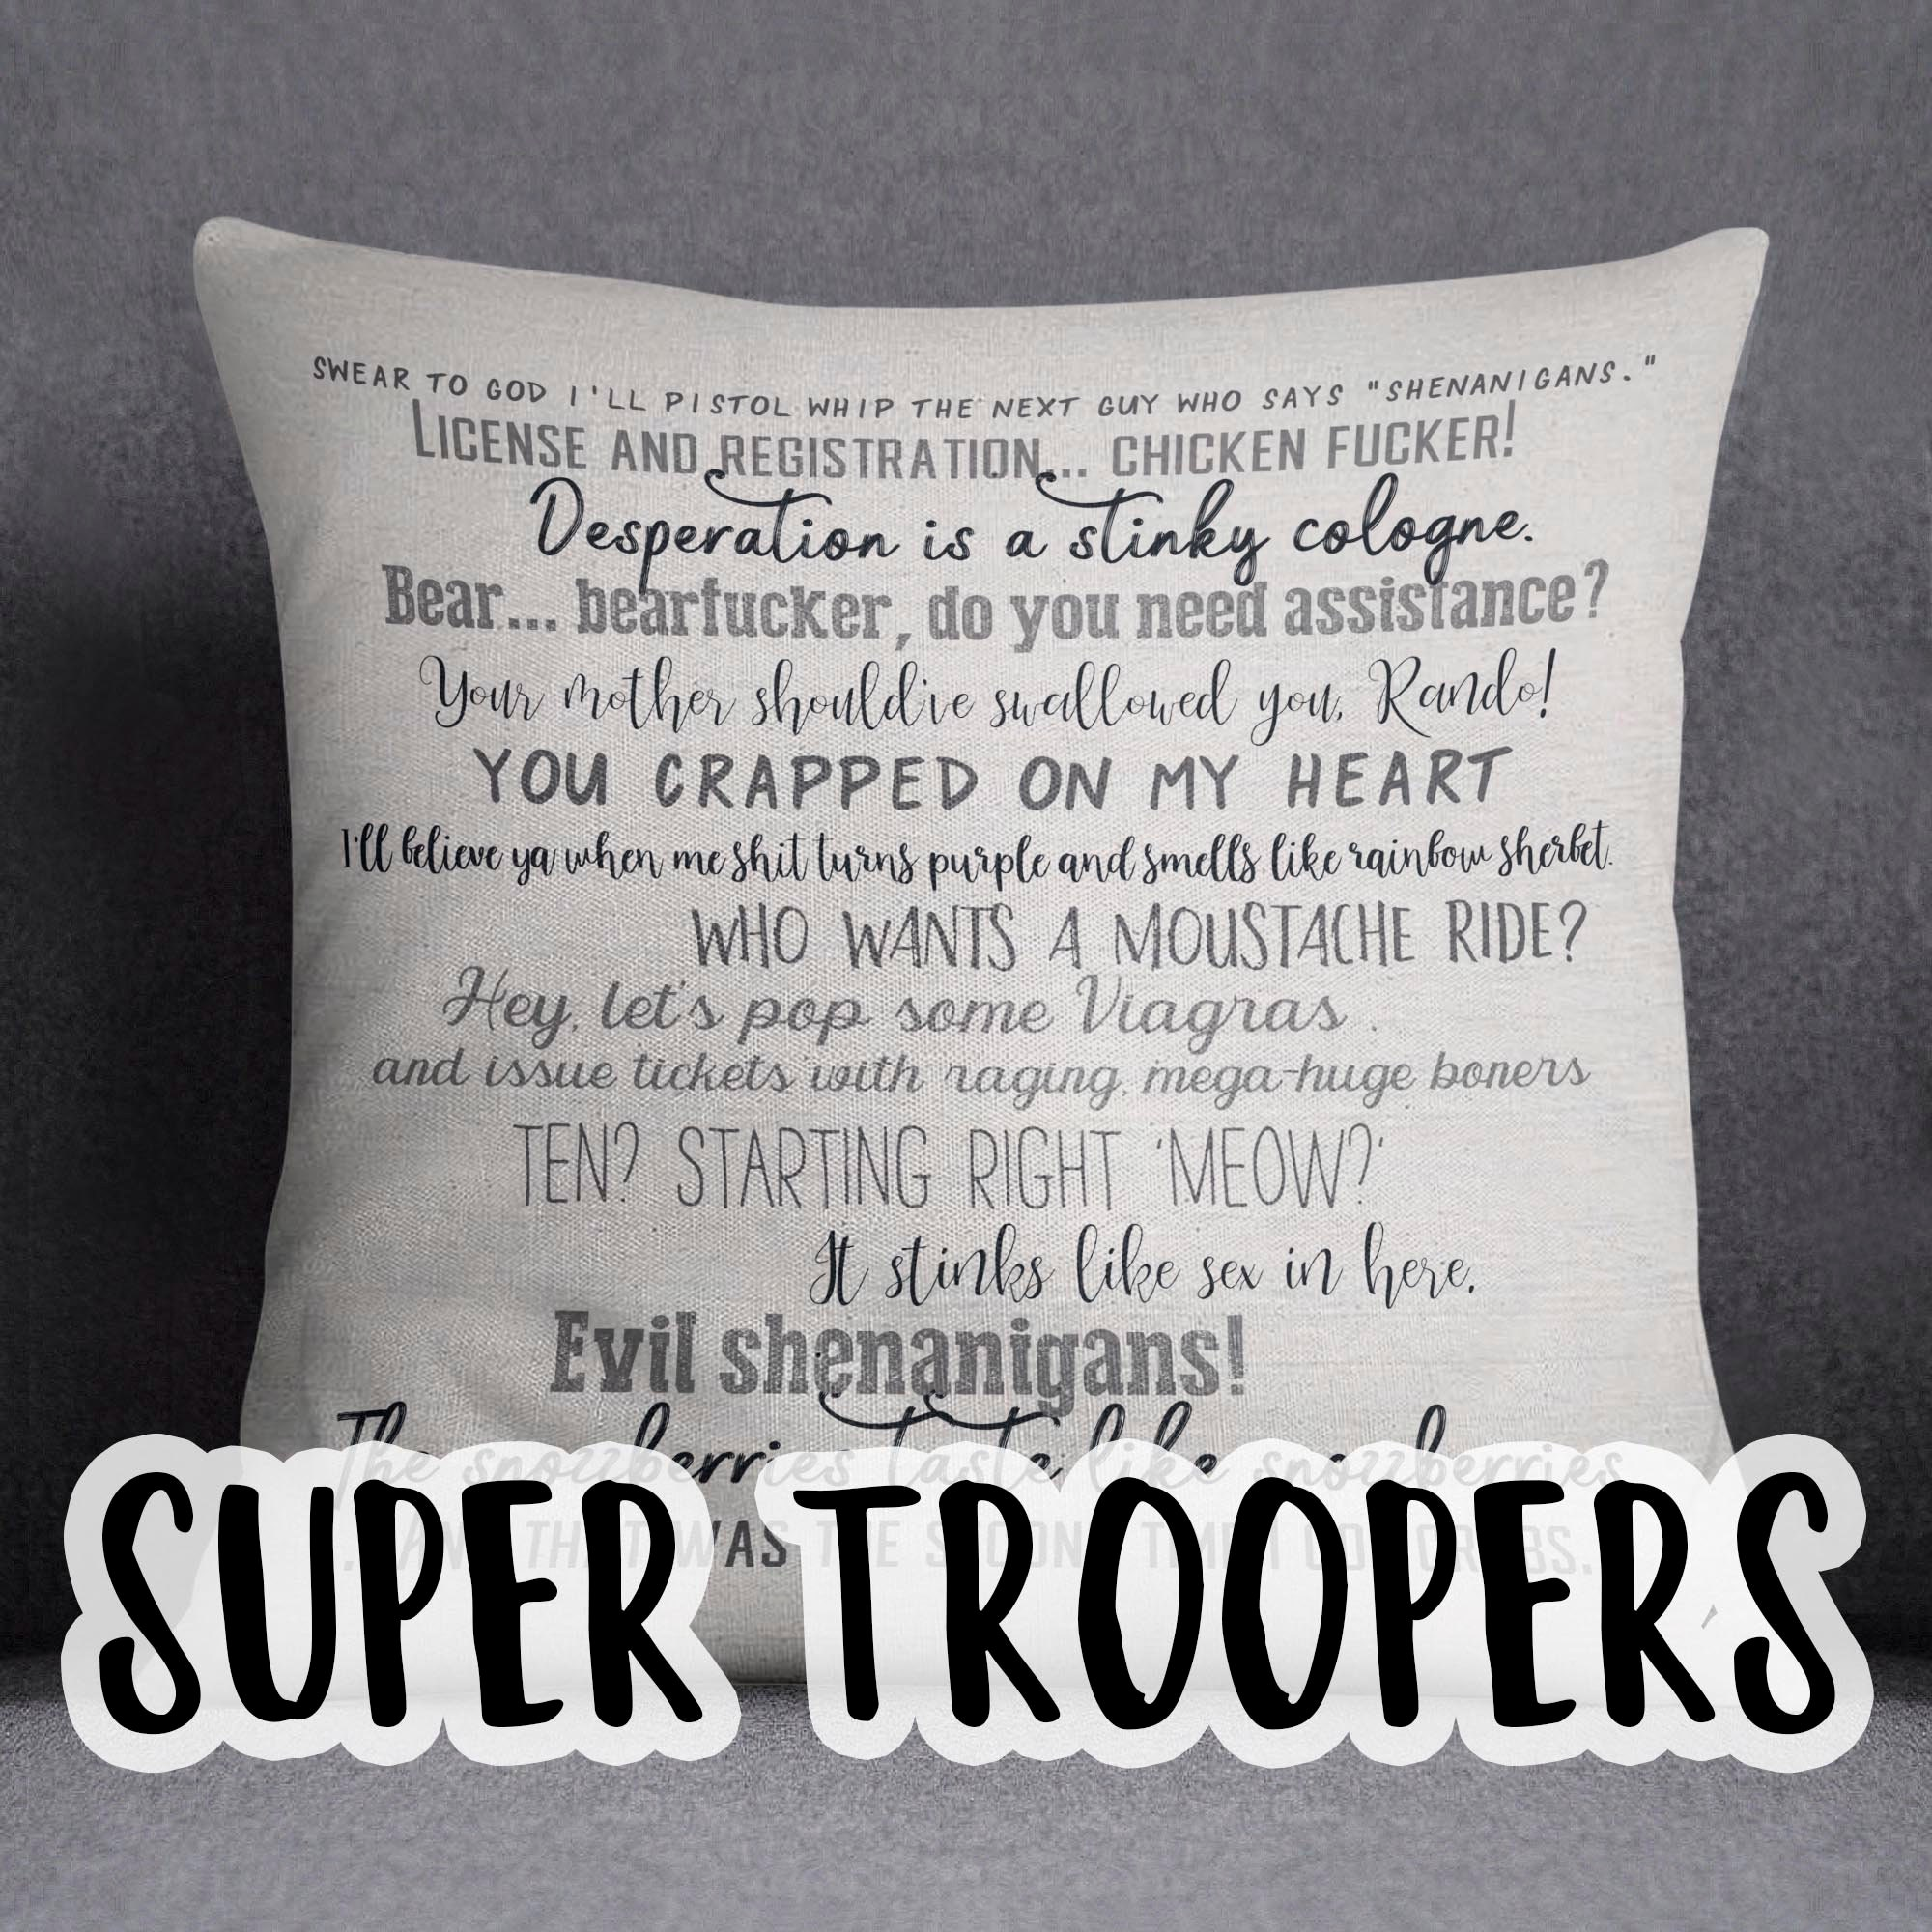 Movie quote pillow cover - Super Troopers - 18x18inch pillow cover - movie  quotes - movie room decor